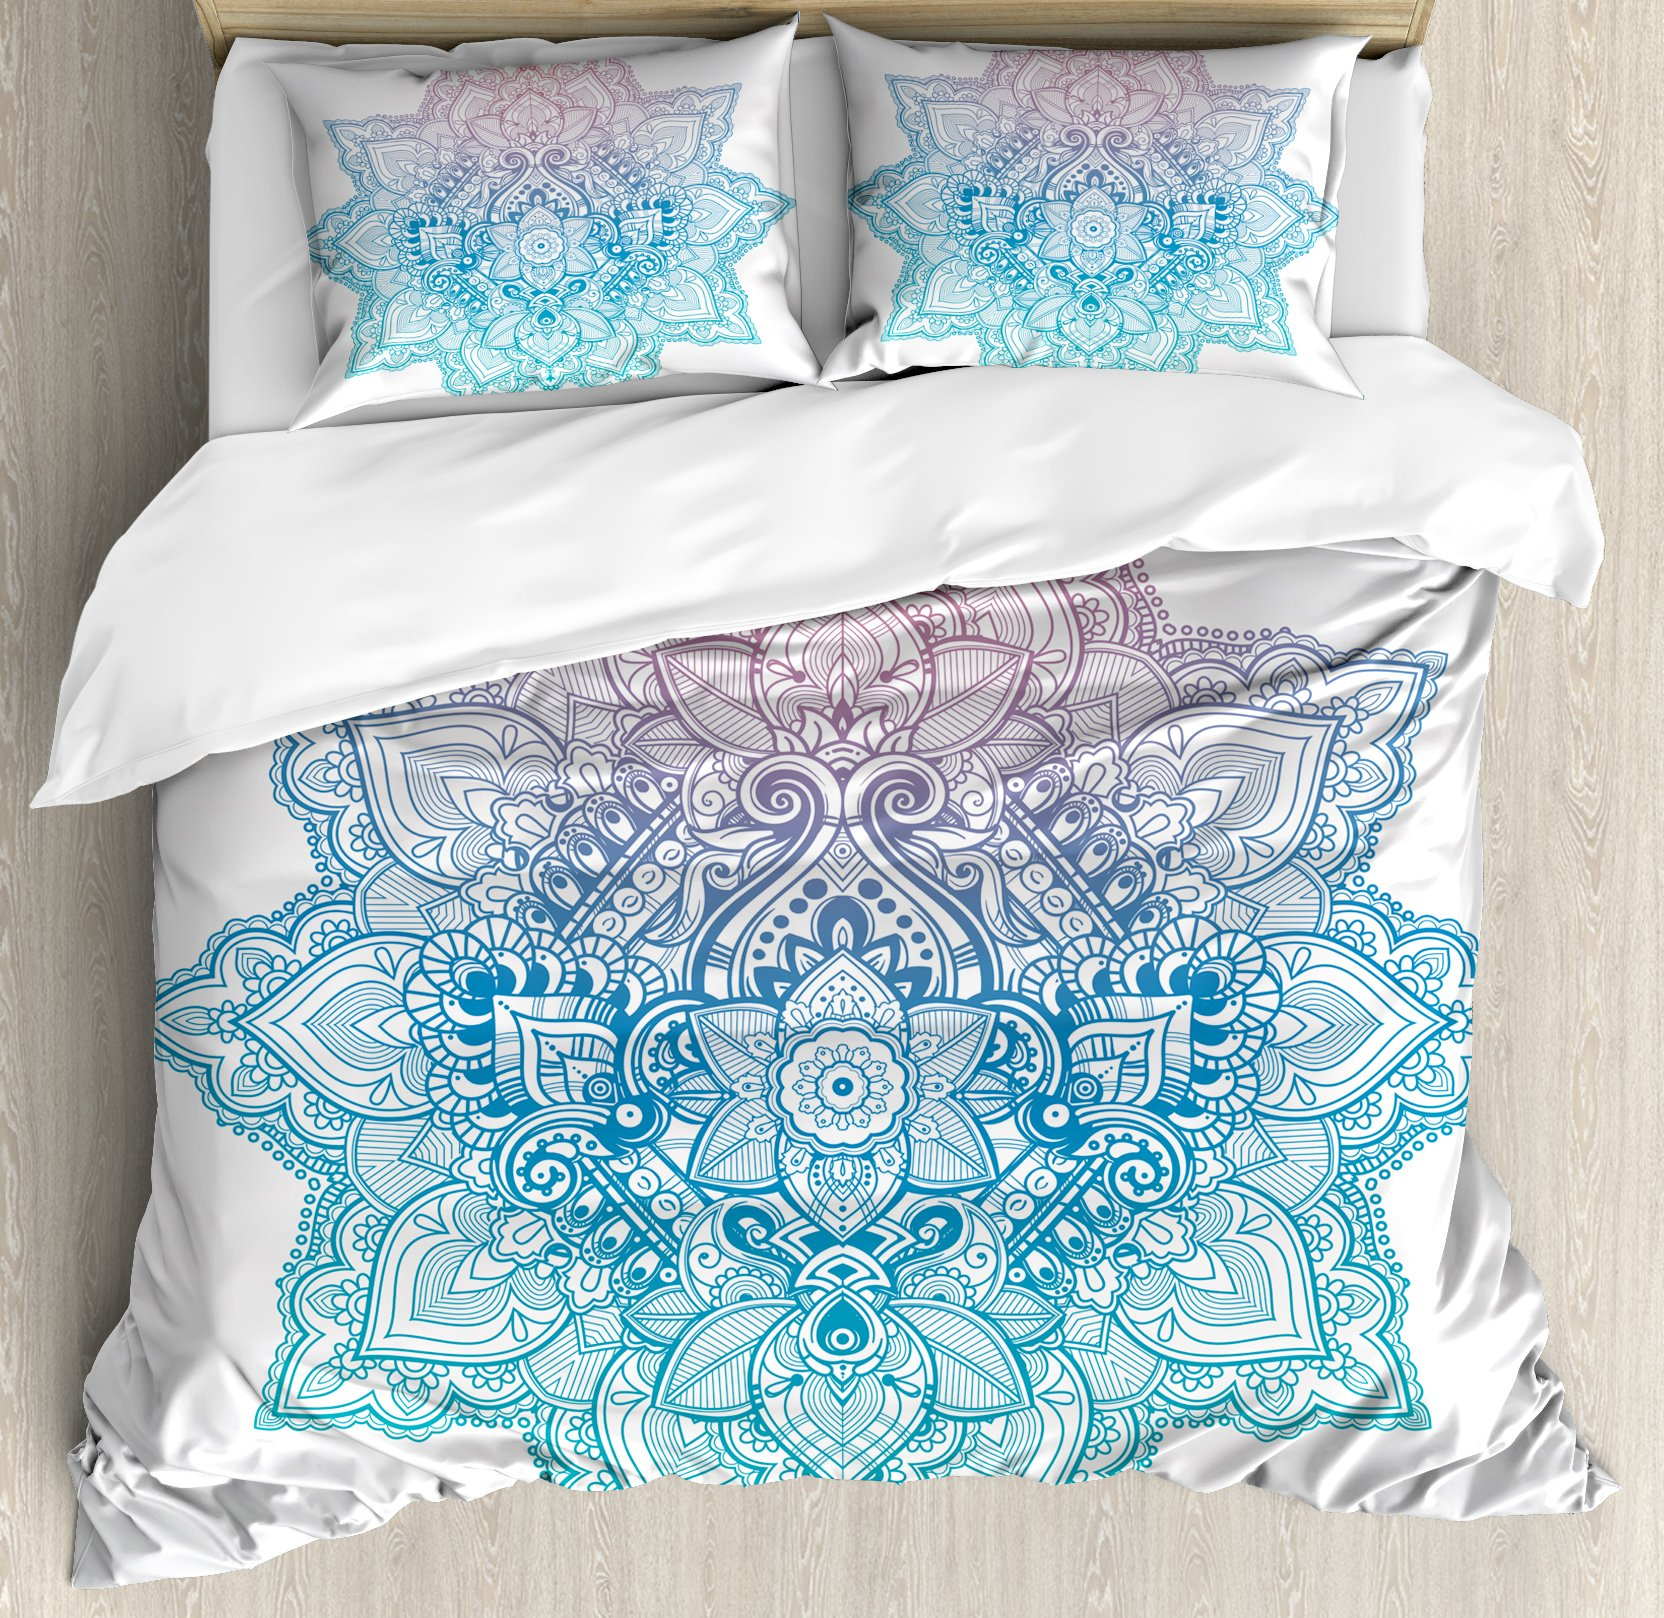 Ambesonne Lotus Duvet Cover Set by, Bohemian Tattoo Style Zen Pastel Toned Mandala Abstract Lotus Flower Design, 3 Piece Bedding Set with Pillow Shams, Queen/Full, Lilac Light Blue